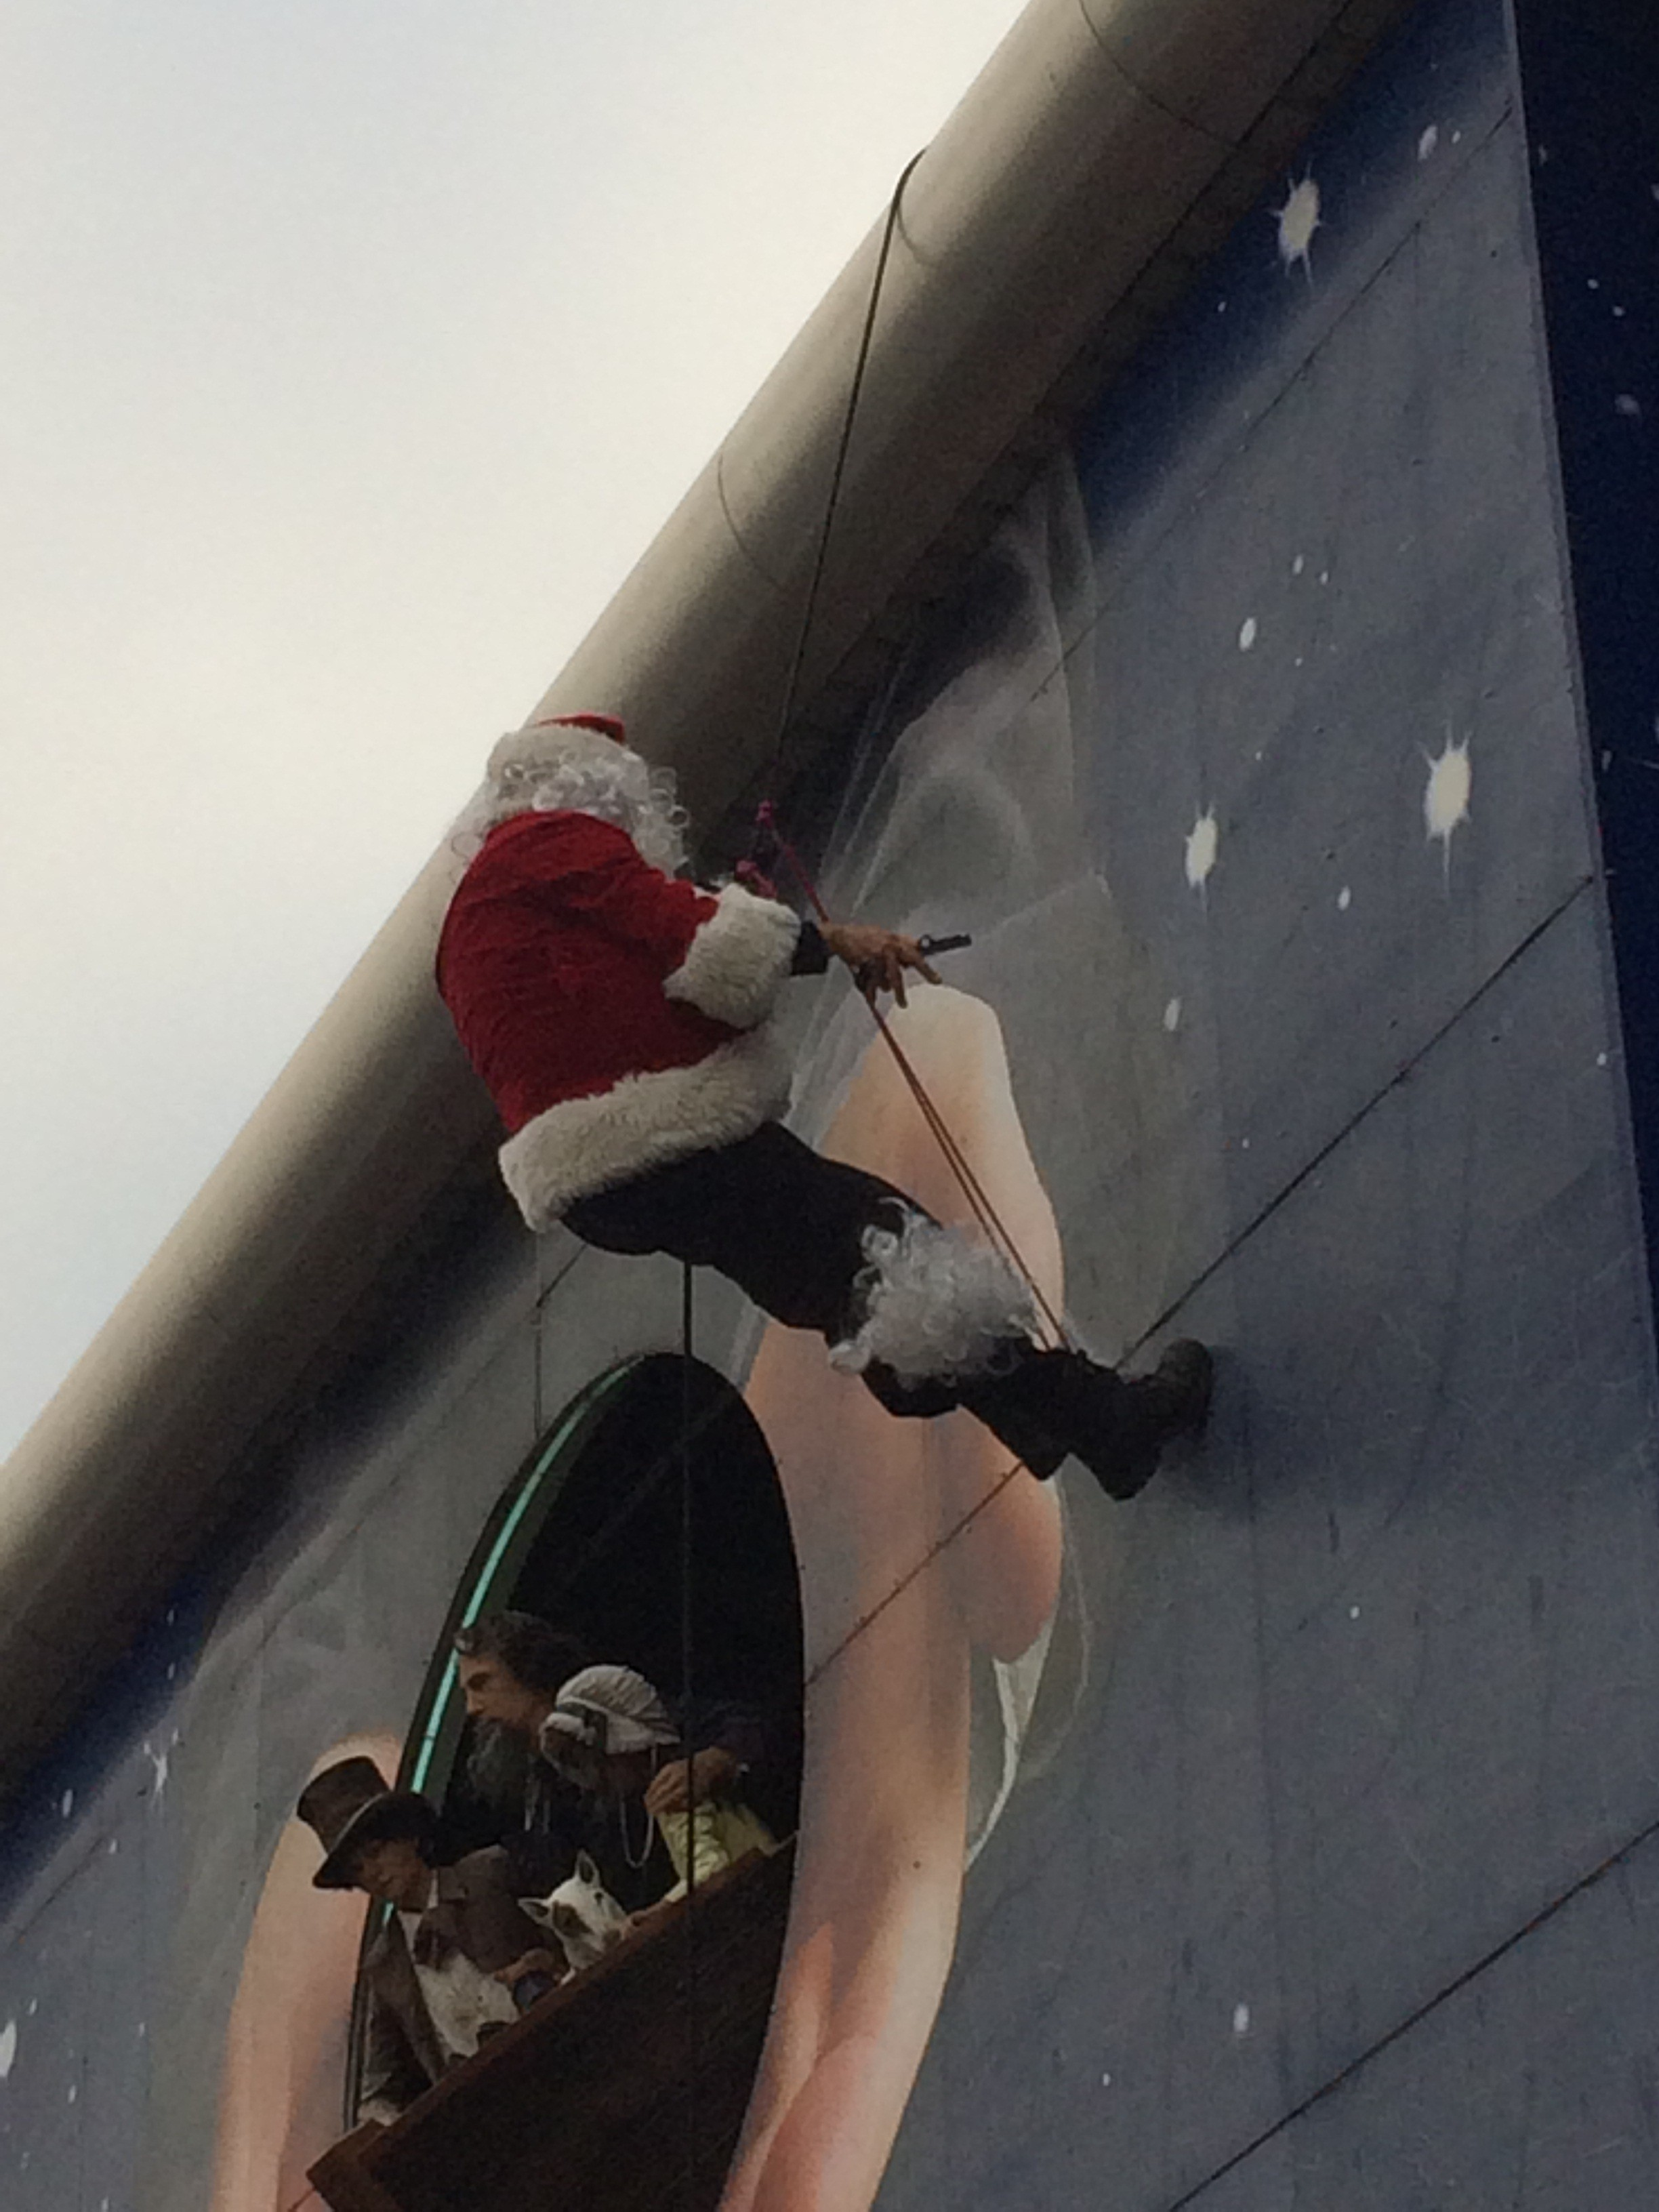 Abseiling Santa has to cut his beard to free himself in front of amused shoppers